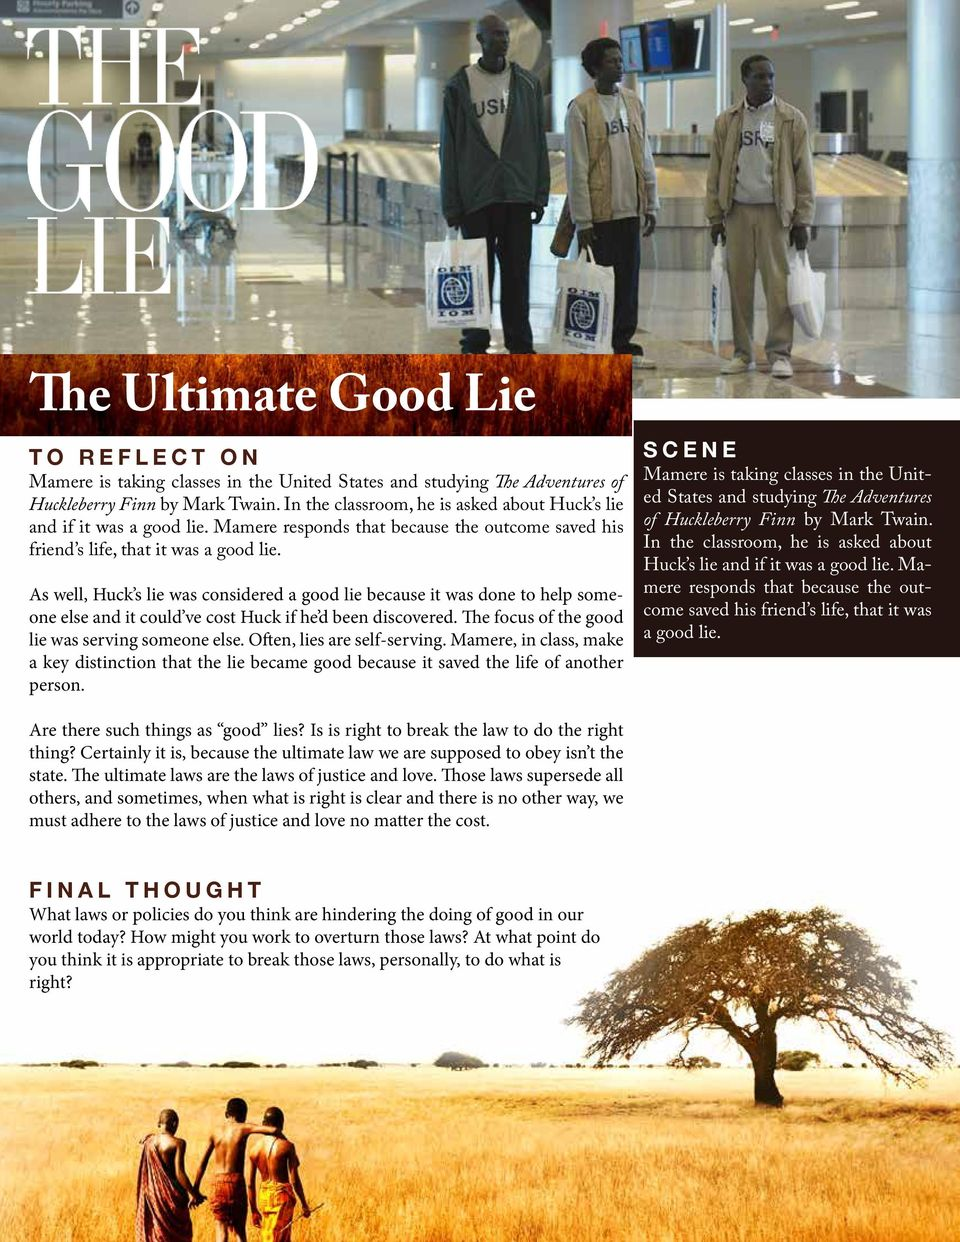 As well, Huck s lie was considered a good lie because it was done to help someone else and it could ve cost Huck if he d been discovered. The focus of the good lie was serving someone else.